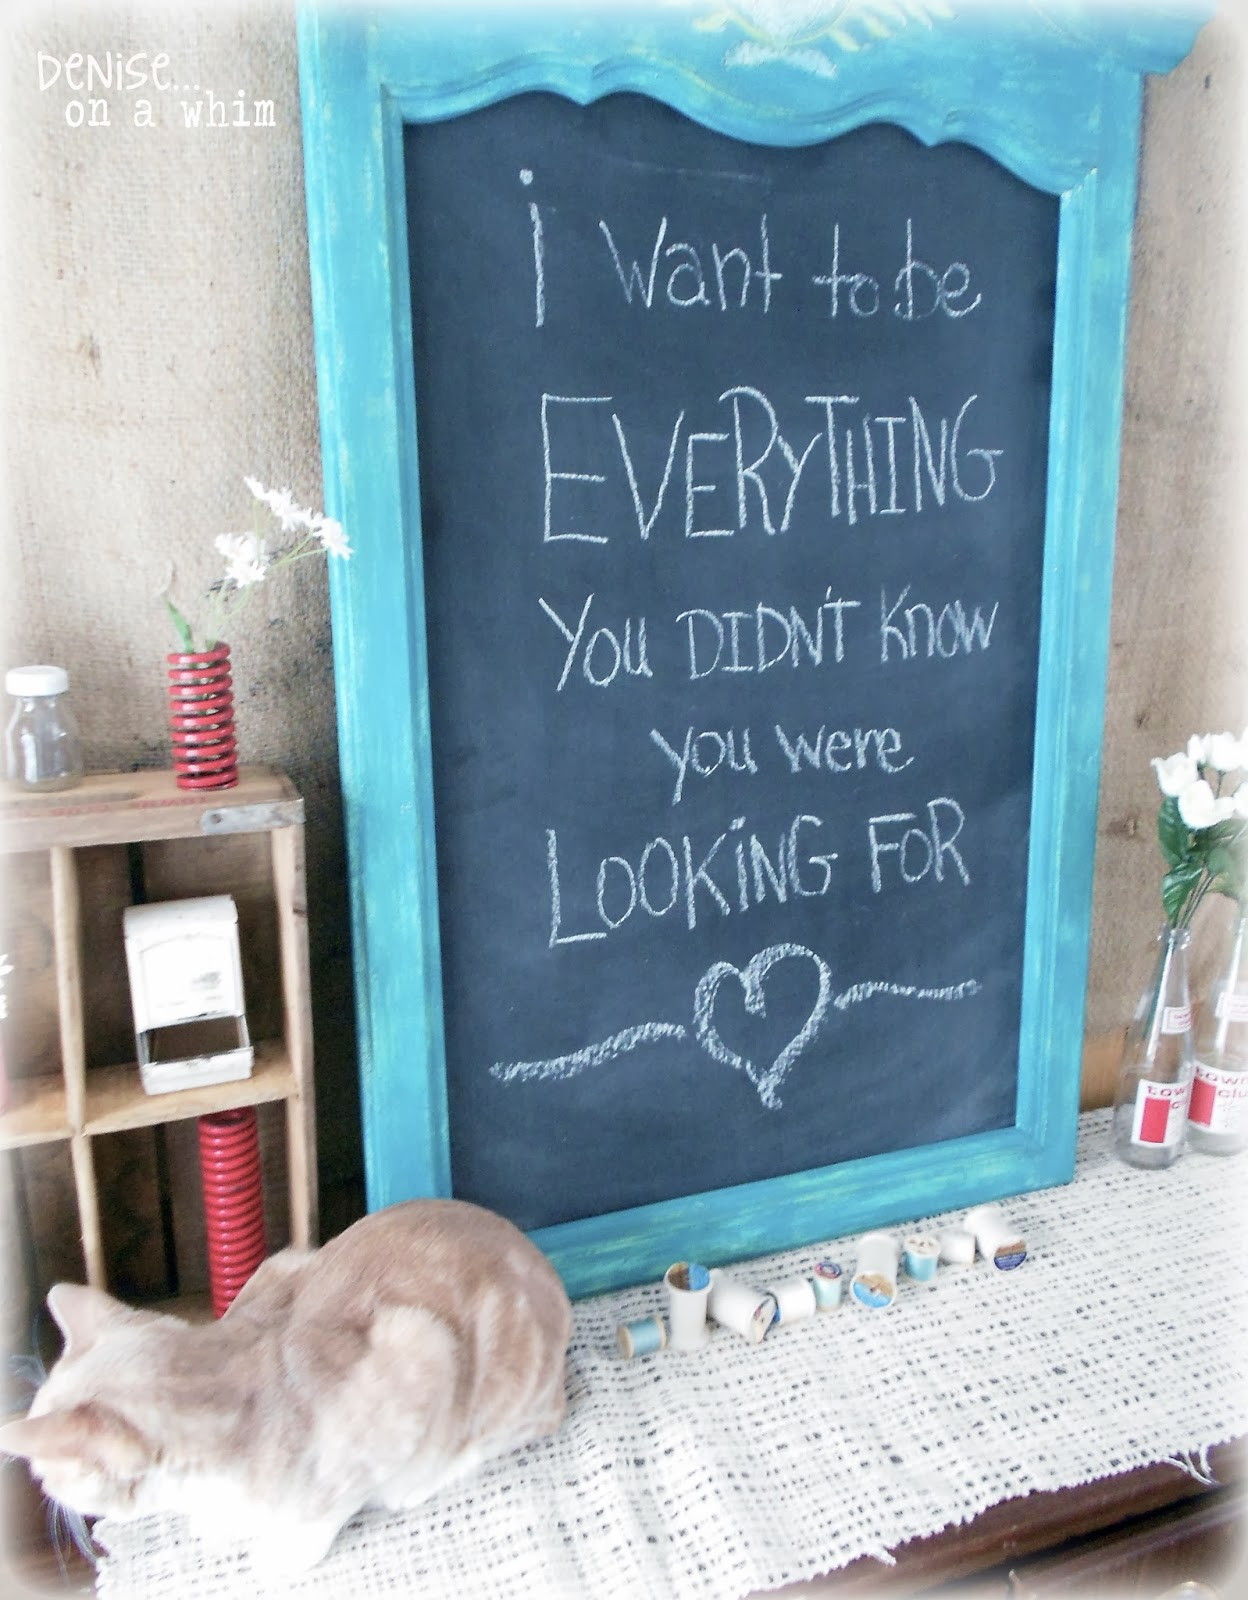 From Mirror to Chalkboard with a Few Colors of Paint via http://deniseonawhim.blogspot.com